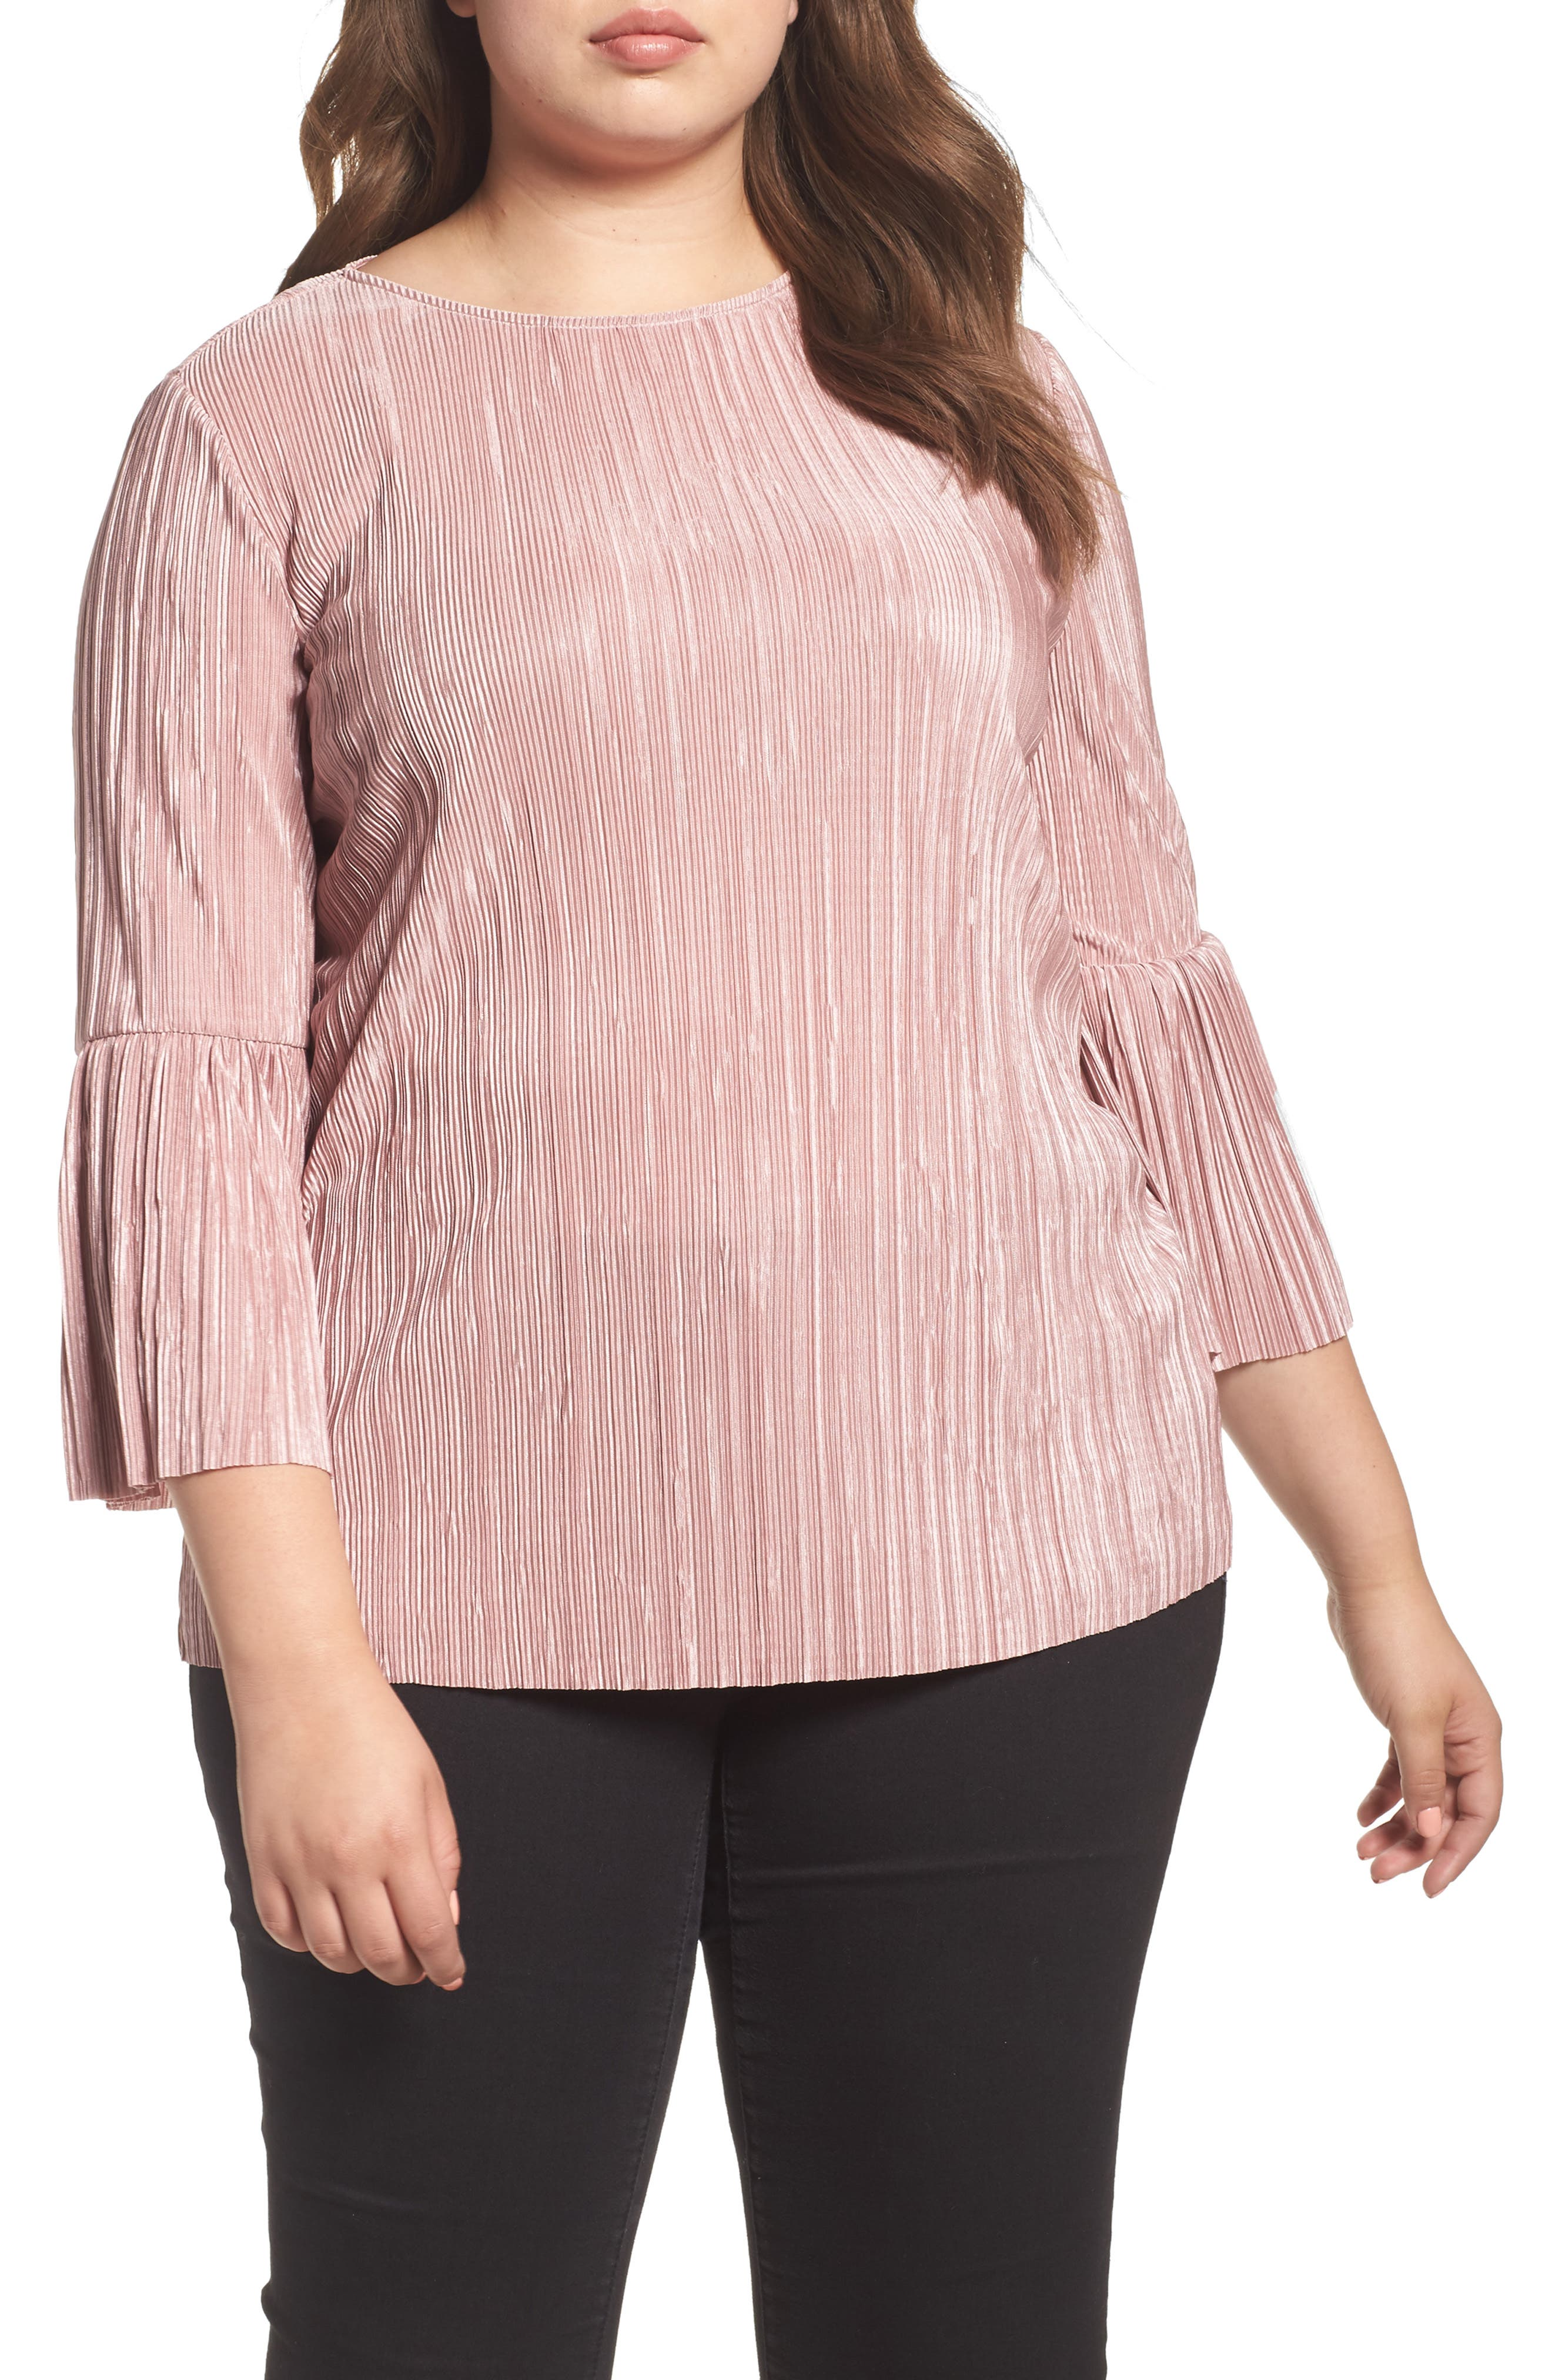 Vince Camuto Pleated Knit Bell Sleeve Top (Plus Size)